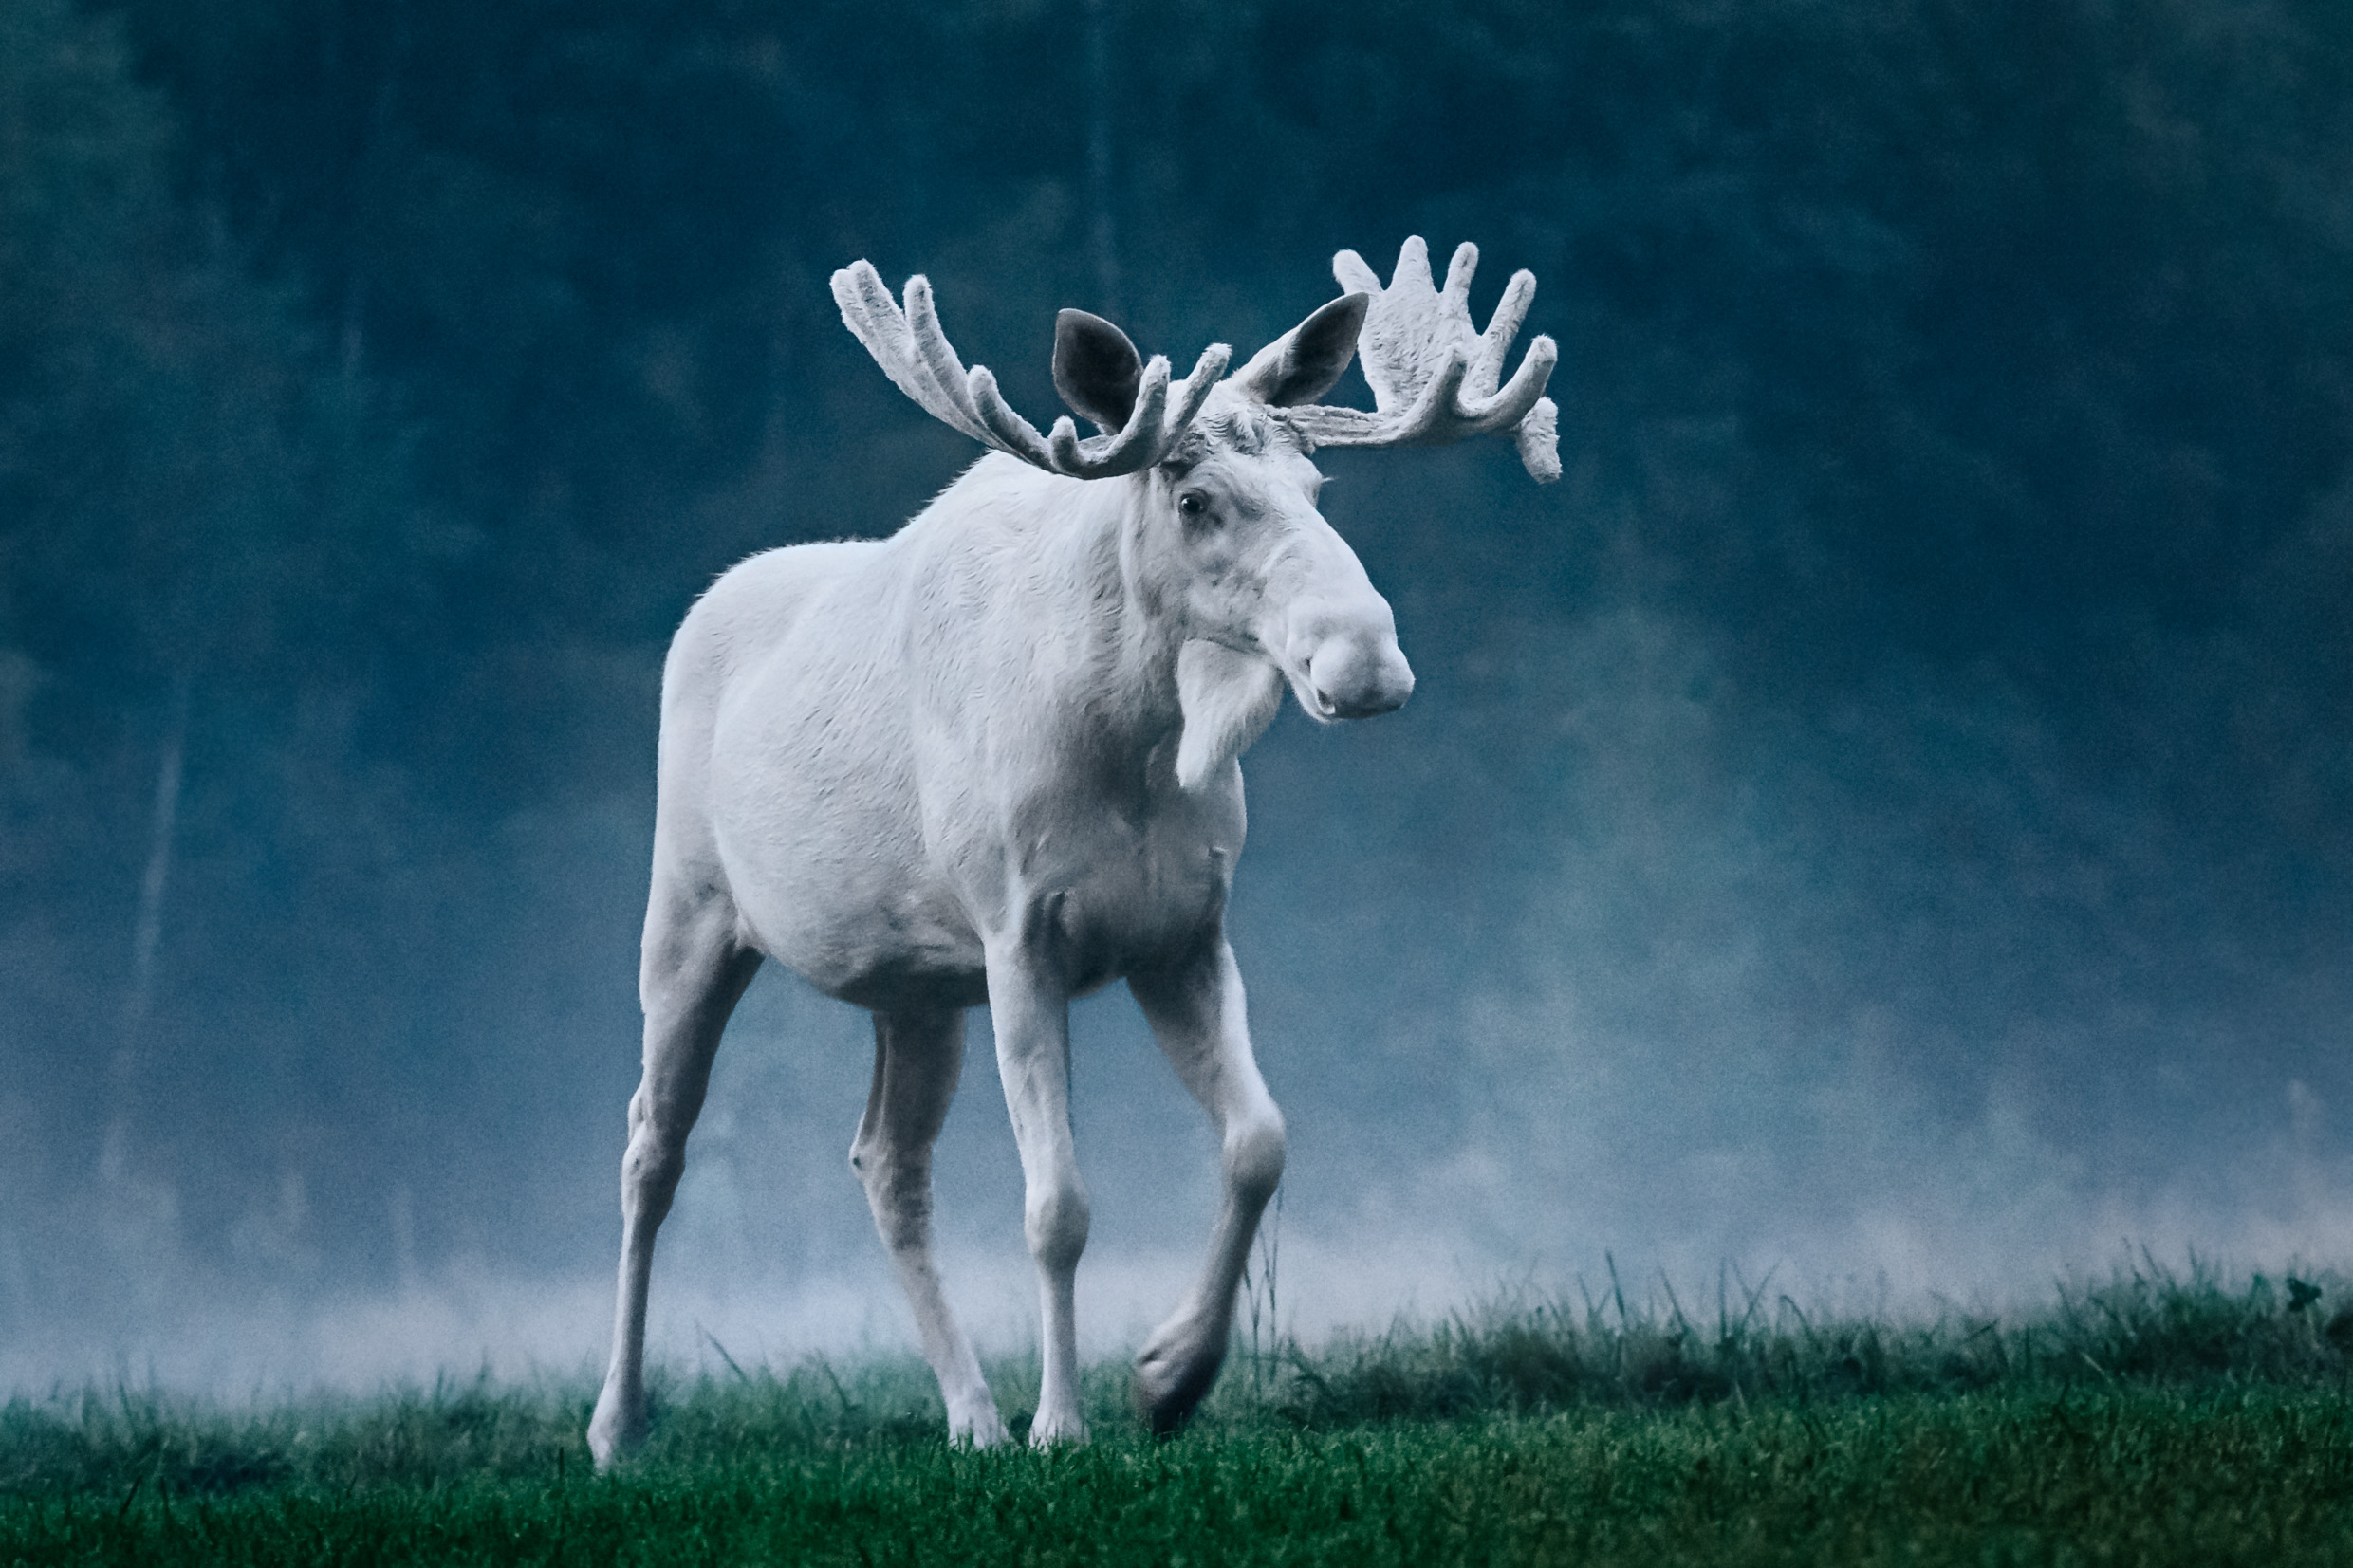 anders_tedeholm-white_moose-5440